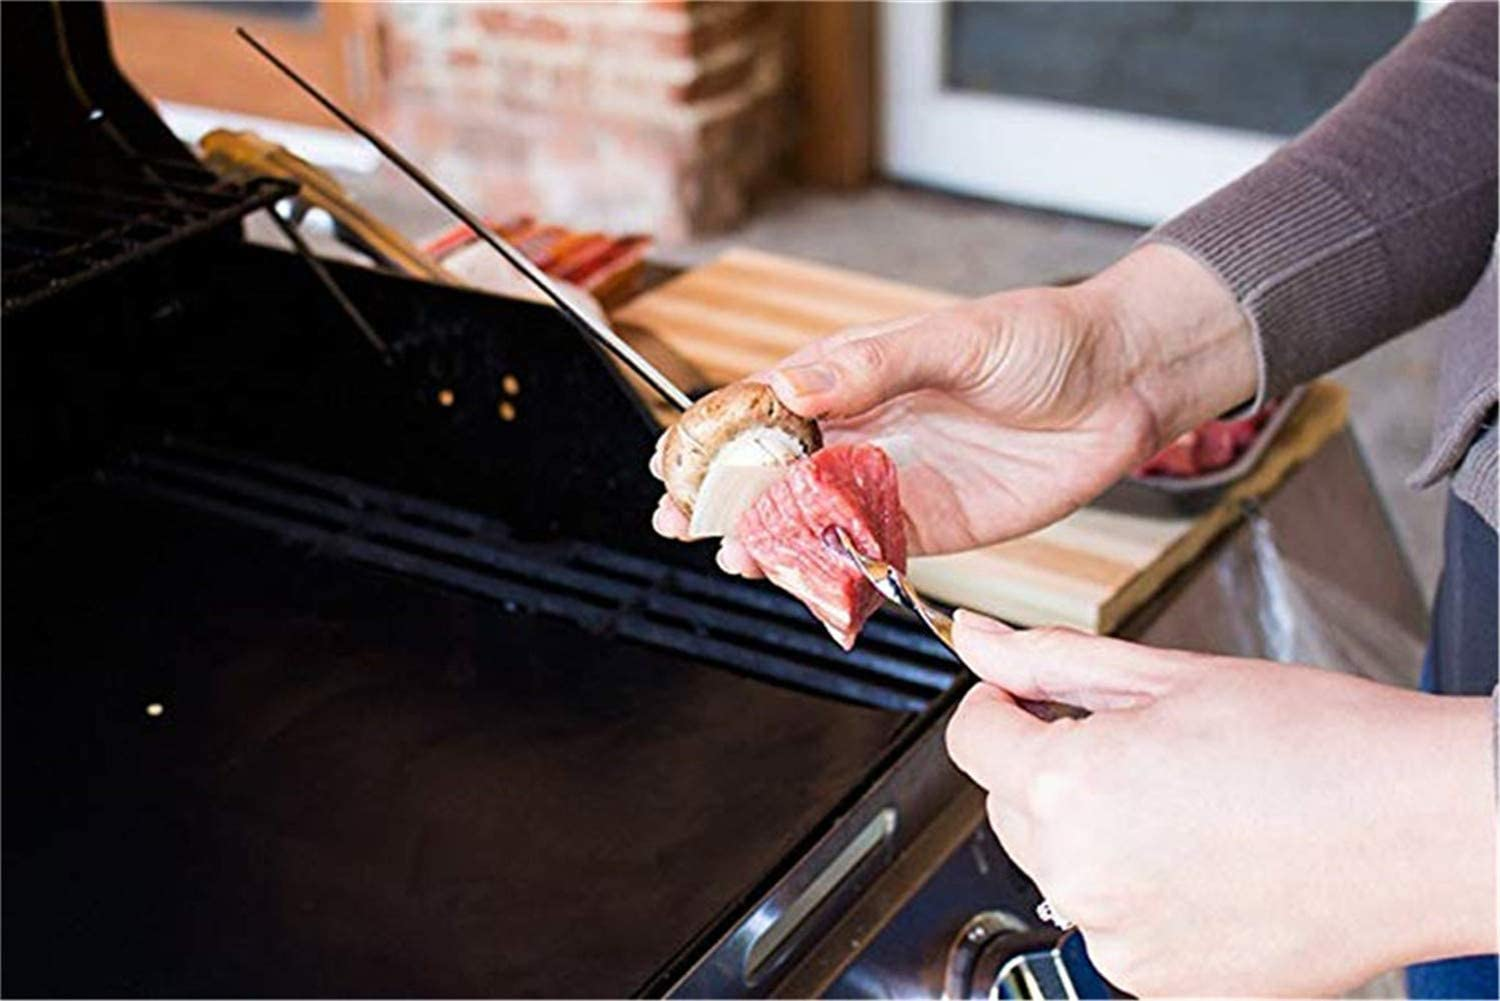 ZEEREE 10 pieces of 38 cm stainless steel barbecue skewers bbq stainless steel barbecue skewers can be reused kebab barbecue grill barbecue bar kebab barbecue